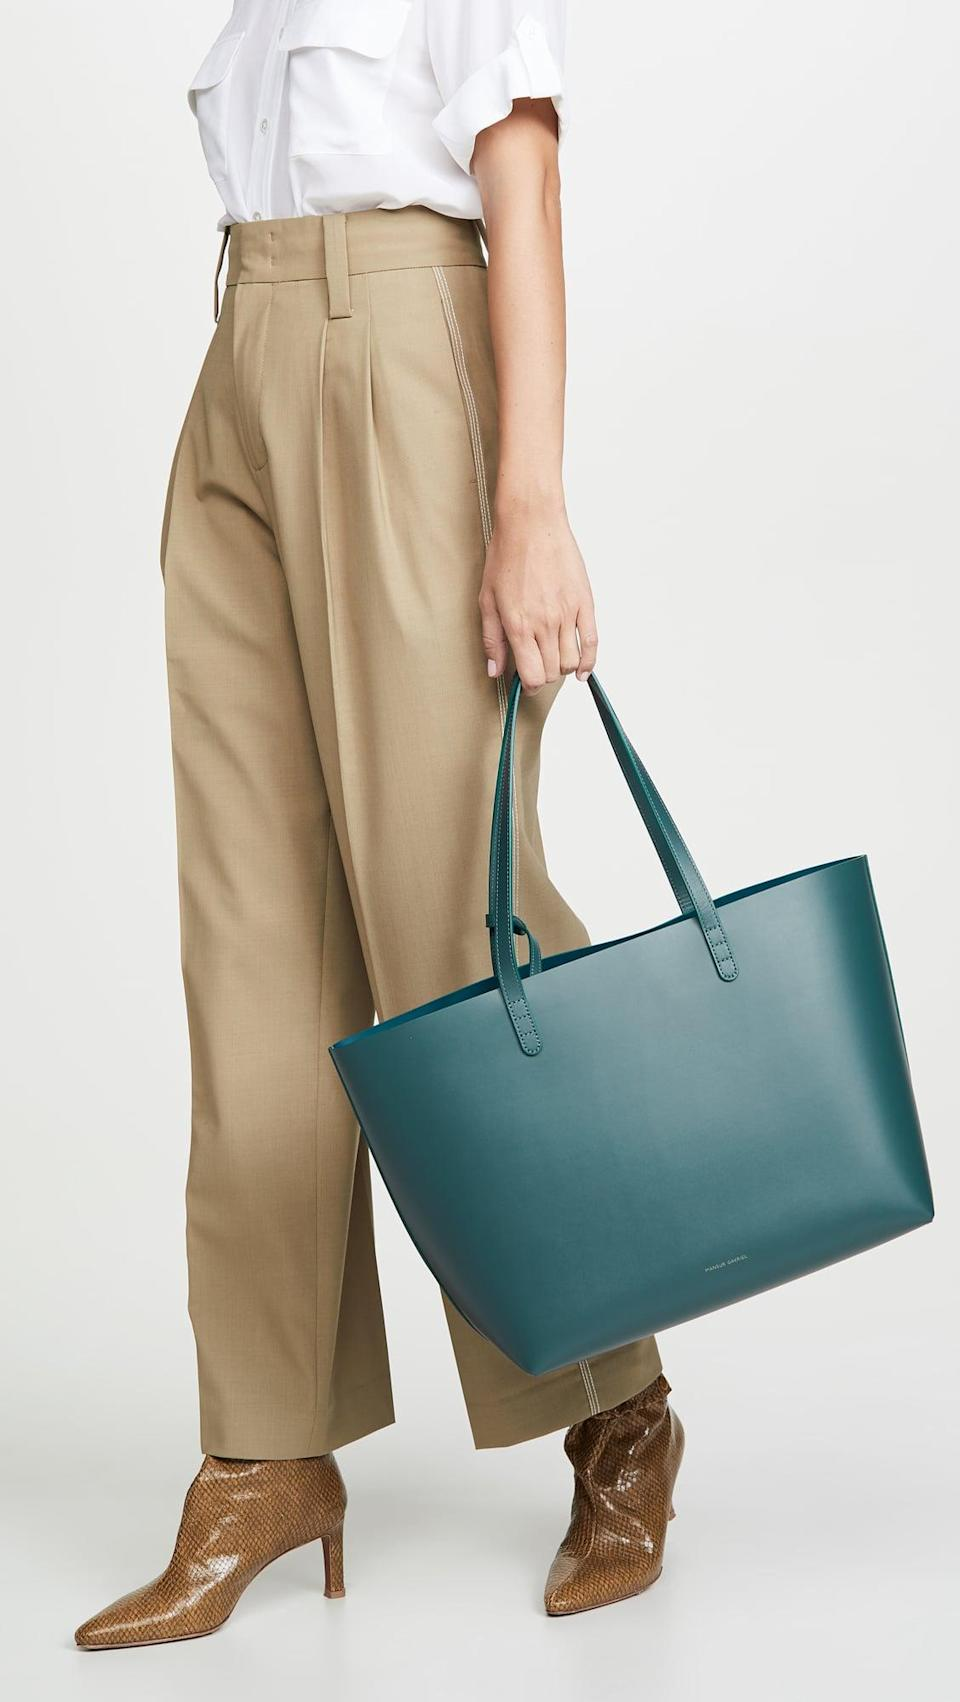 """<p>Spice up the basic tote silhouette with a fun color and get this <a href=""""https://www.popsugar.com/buy/Mansur-Gavriel-Large-Tote-551706?p_name=Mansur%20Gavriel%20Large%20Tote&retailer=shopbop.com&pid=551706&price=675&evar1=fab%3Aus&evar9=45623846&evar98=https%3A%2F%2Fwww.popsugar.com%2Ffashion%2Fphoto-gallery%2F45623846%2Fimage%2F47066457%2FMansur-Gavriel-Large-Tote&list1=shopping%2Caccessories%2Cbags%2Cworkwear&prop13=mobile&pdata=1"""" class=""""link rapid-noclick-resp"""" rel=""""nofollow noopener"""" target=""""_blank"""" data-ylk=""""slk:Mansur Gavriel Large Tote"""">Mansur Gavriel Large Tote</a> ($675).</p>"""